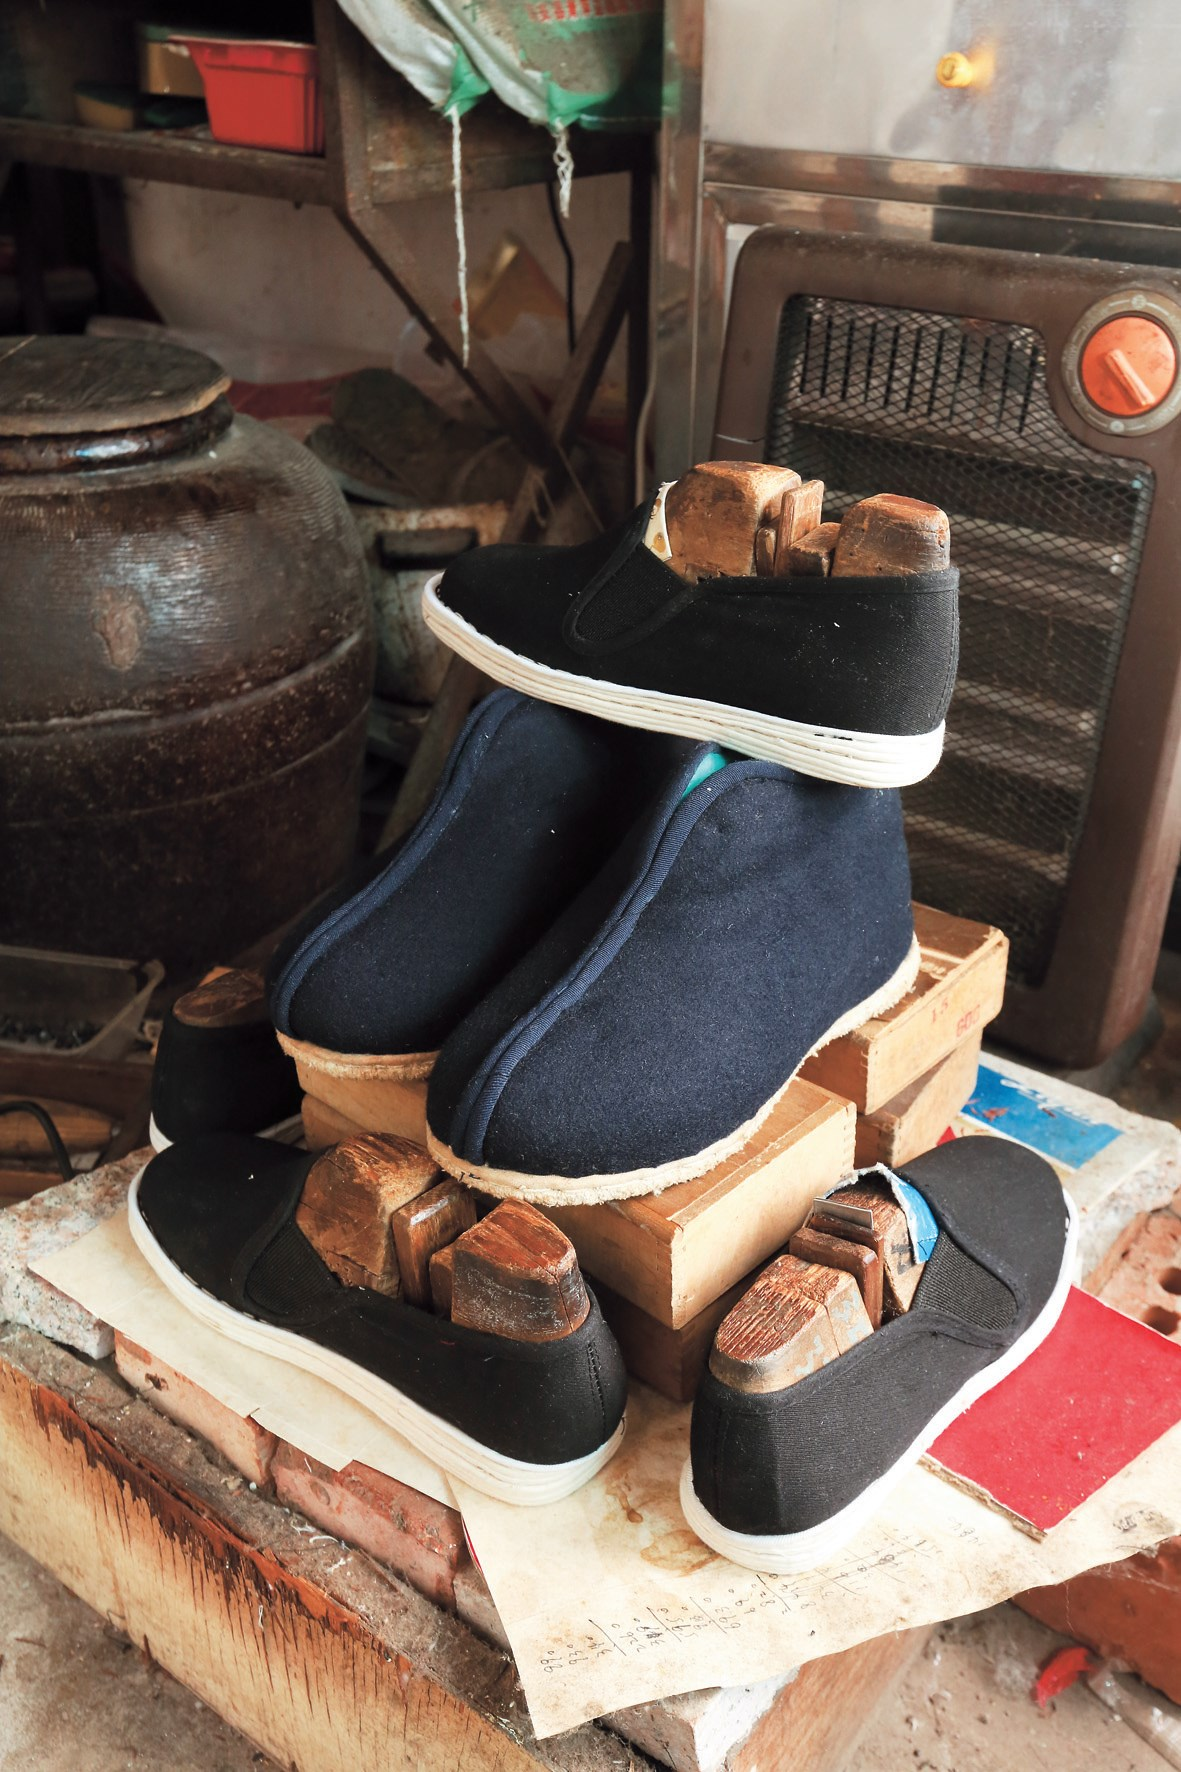 A pair of Yang Shenxi's handmade cloth shoes costs 170 yuan (US$25.70), at least five times more than similar mass-produced shoes on the market.